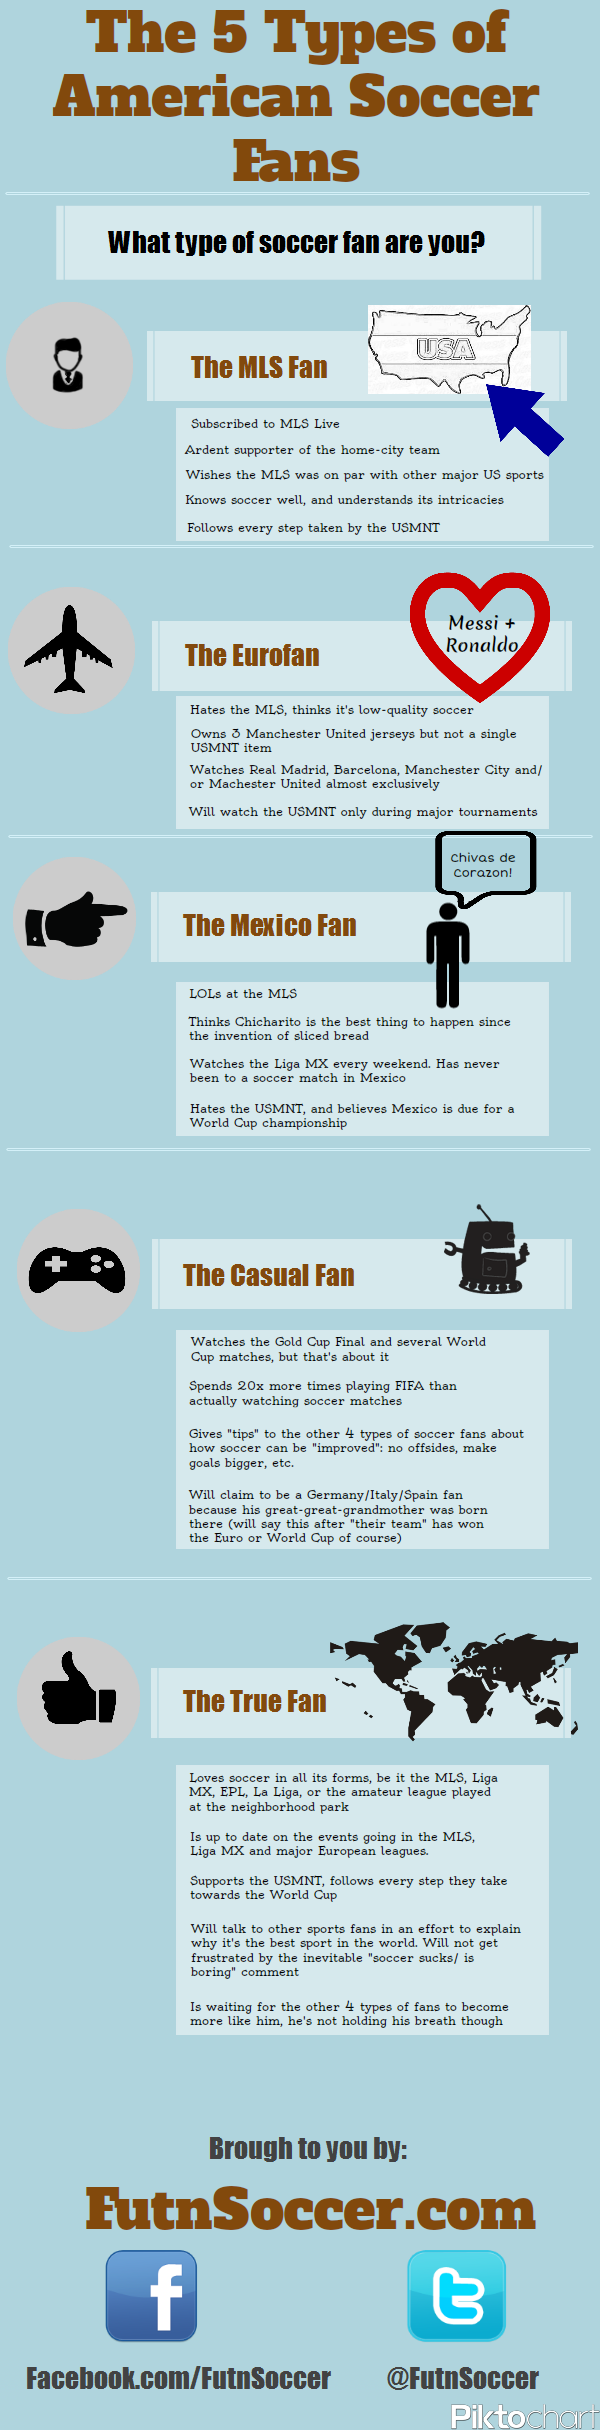 Types of American Soccer Fans